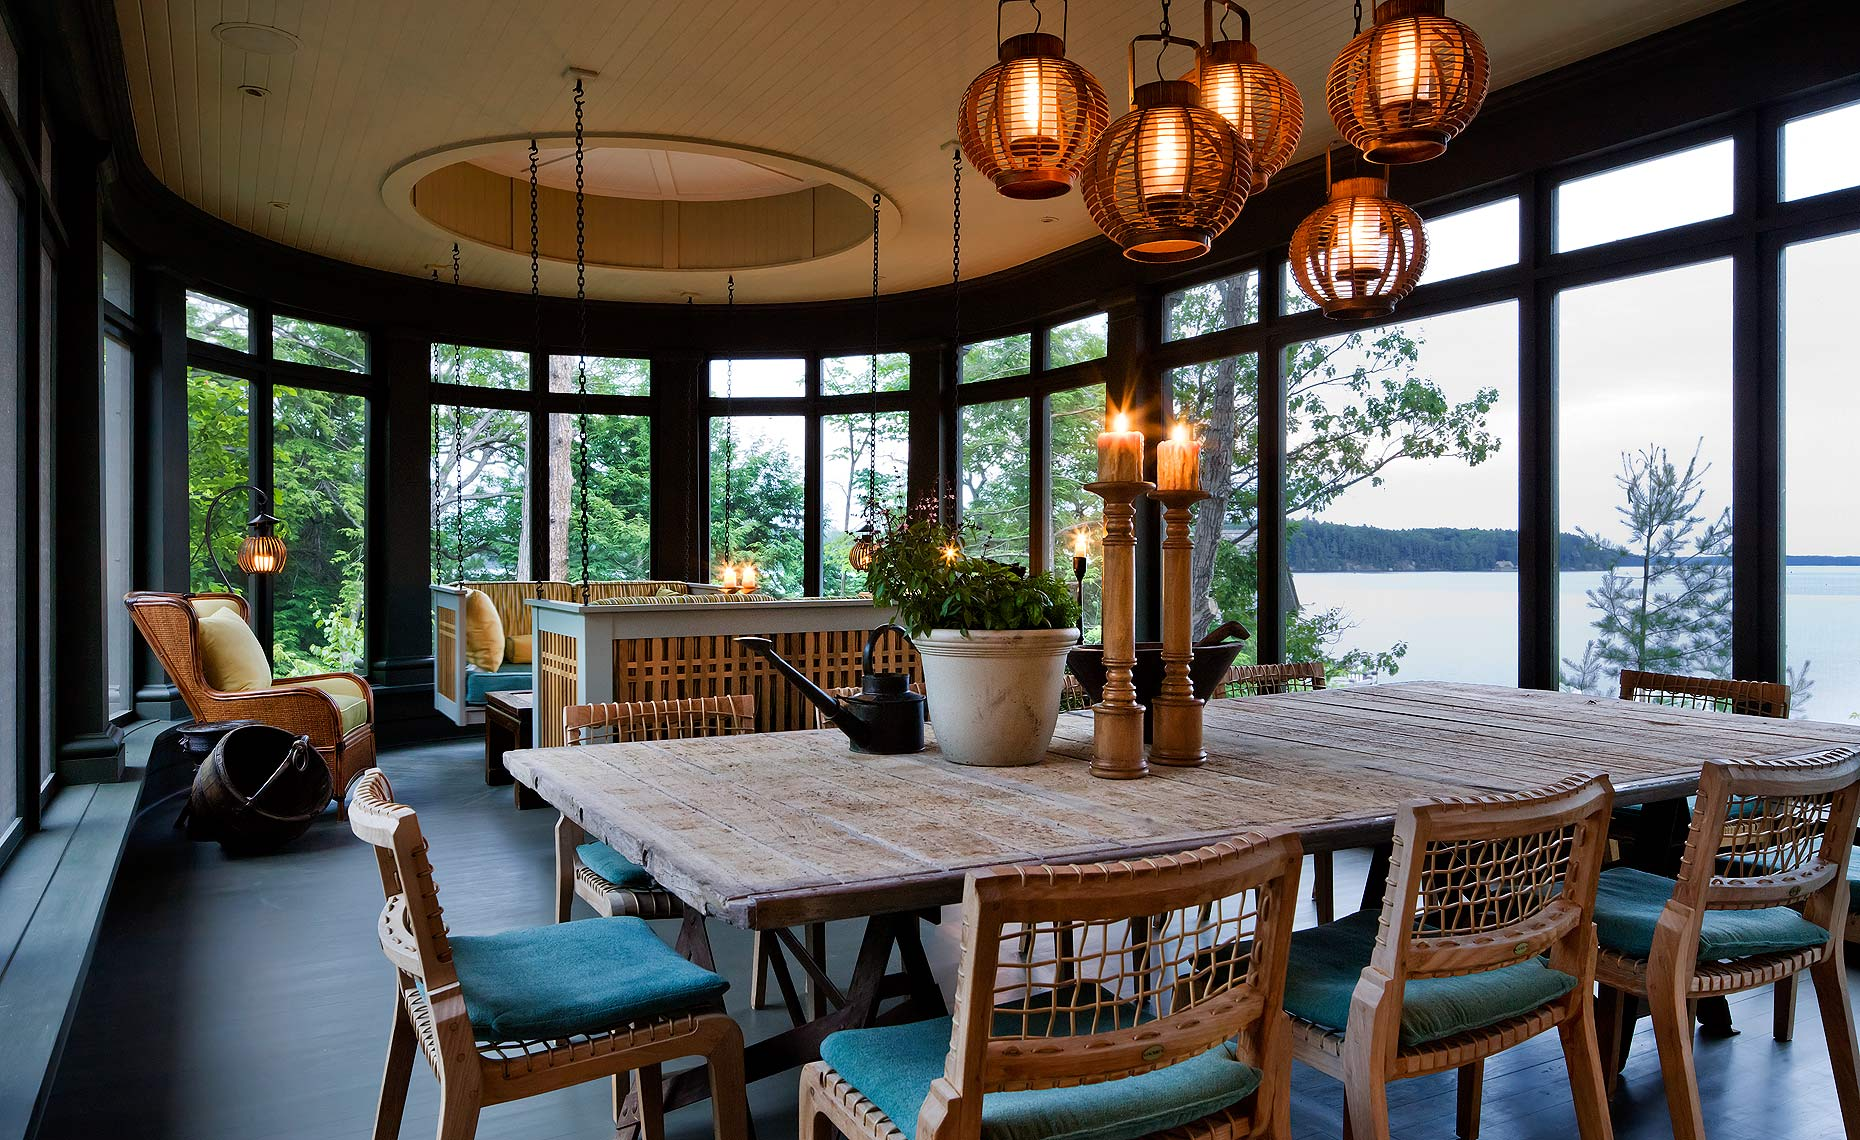 Muskoka Room by Lisa Stevens and Co Design